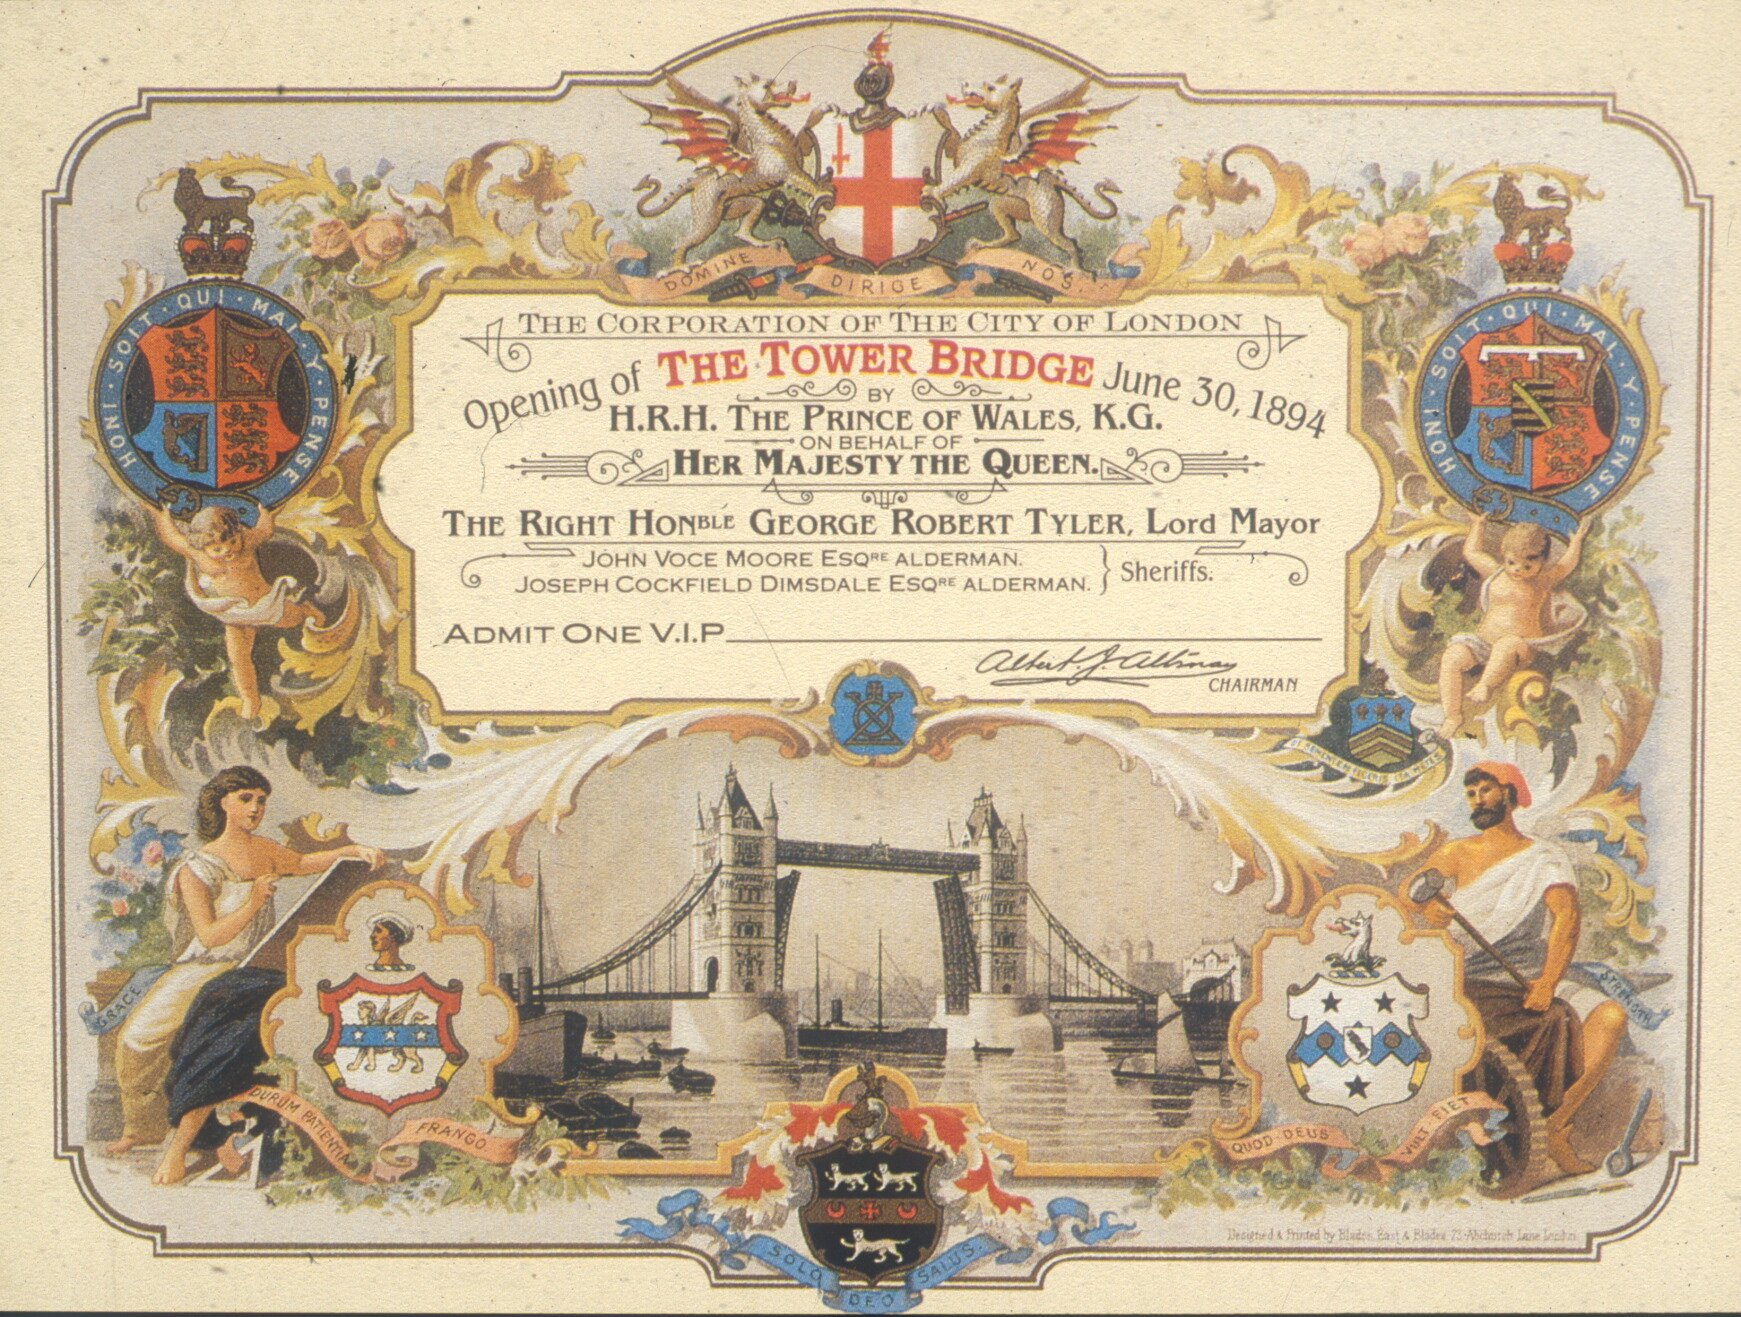 Happy birthday to us! Tower Bridge was opened on 30 June 1894 by the then H.R.H Prince of Wales.